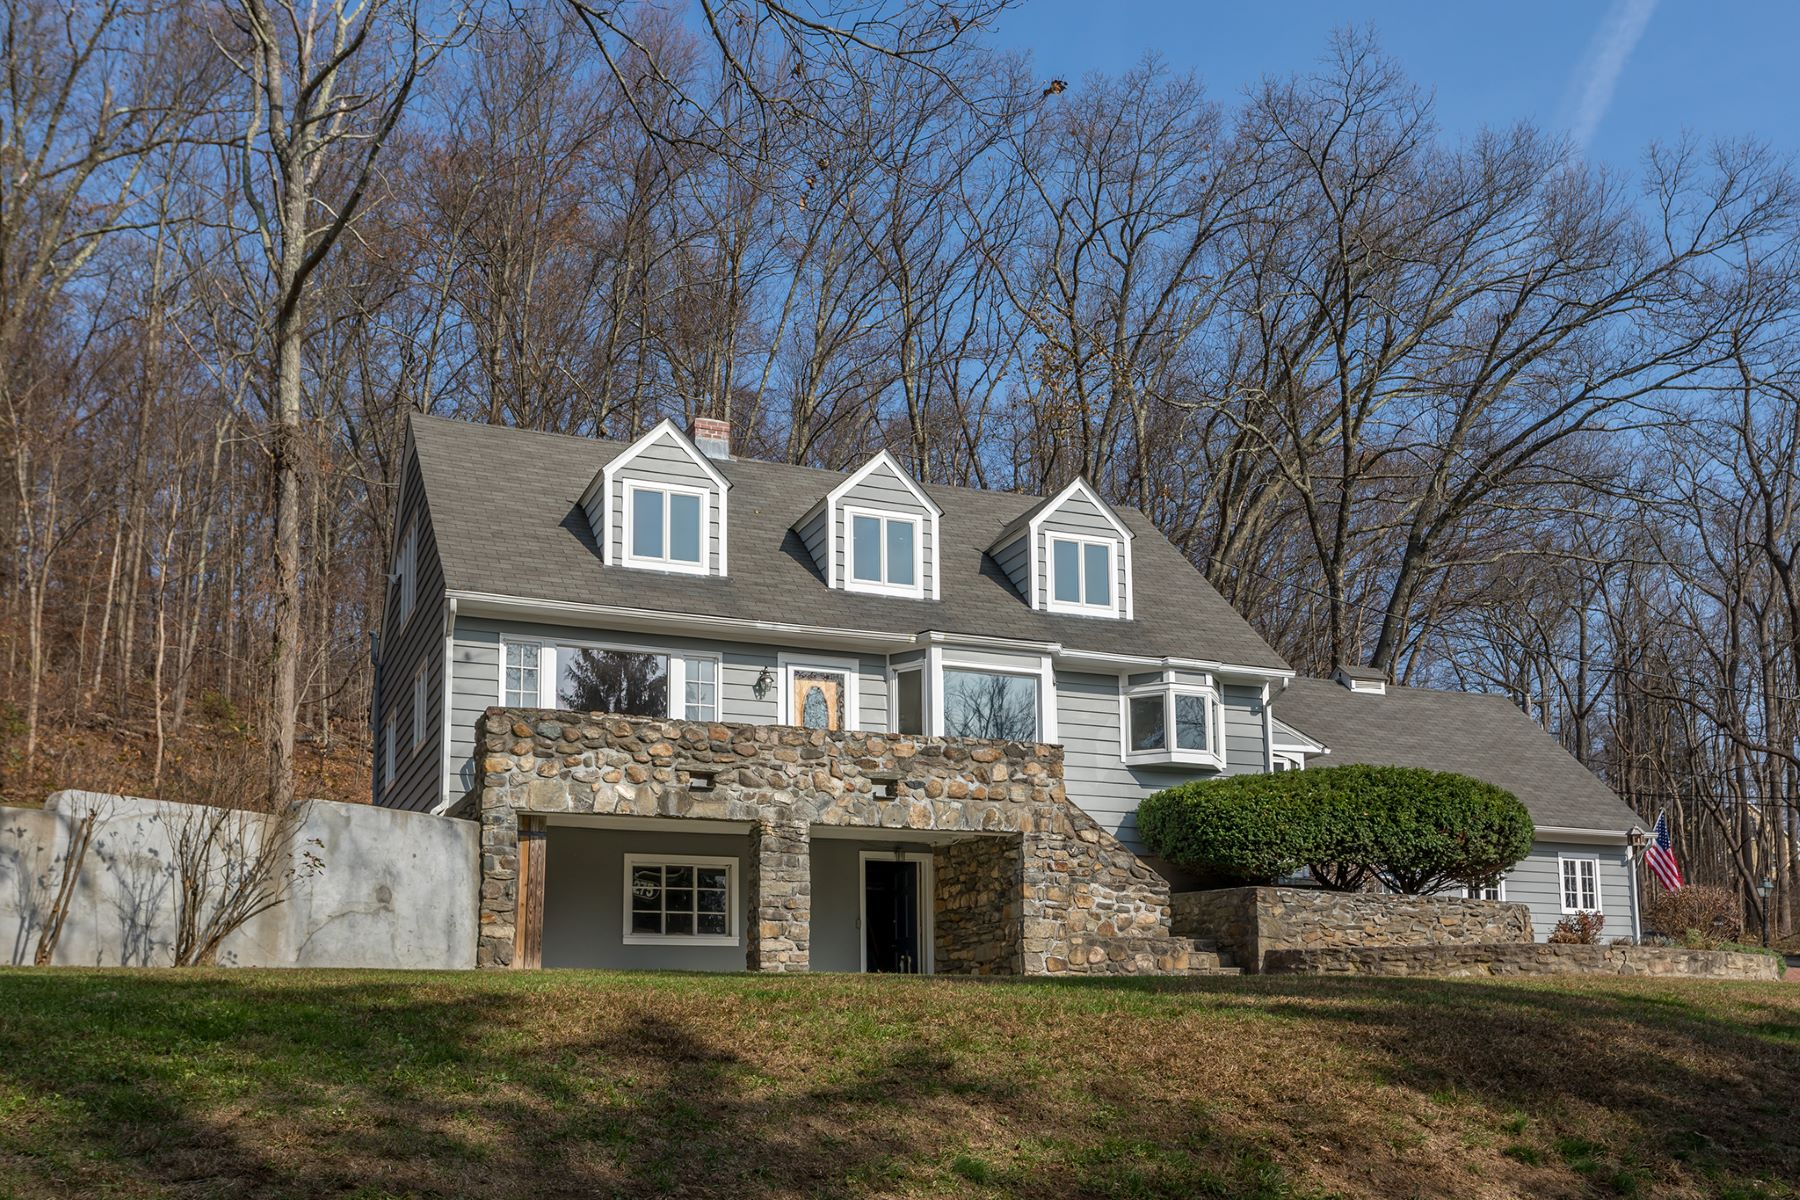 Single Family Homes for Sale at Charming Cape 26 Cedar Hill Rd, Bridgewater, Connecticut 06752 United States